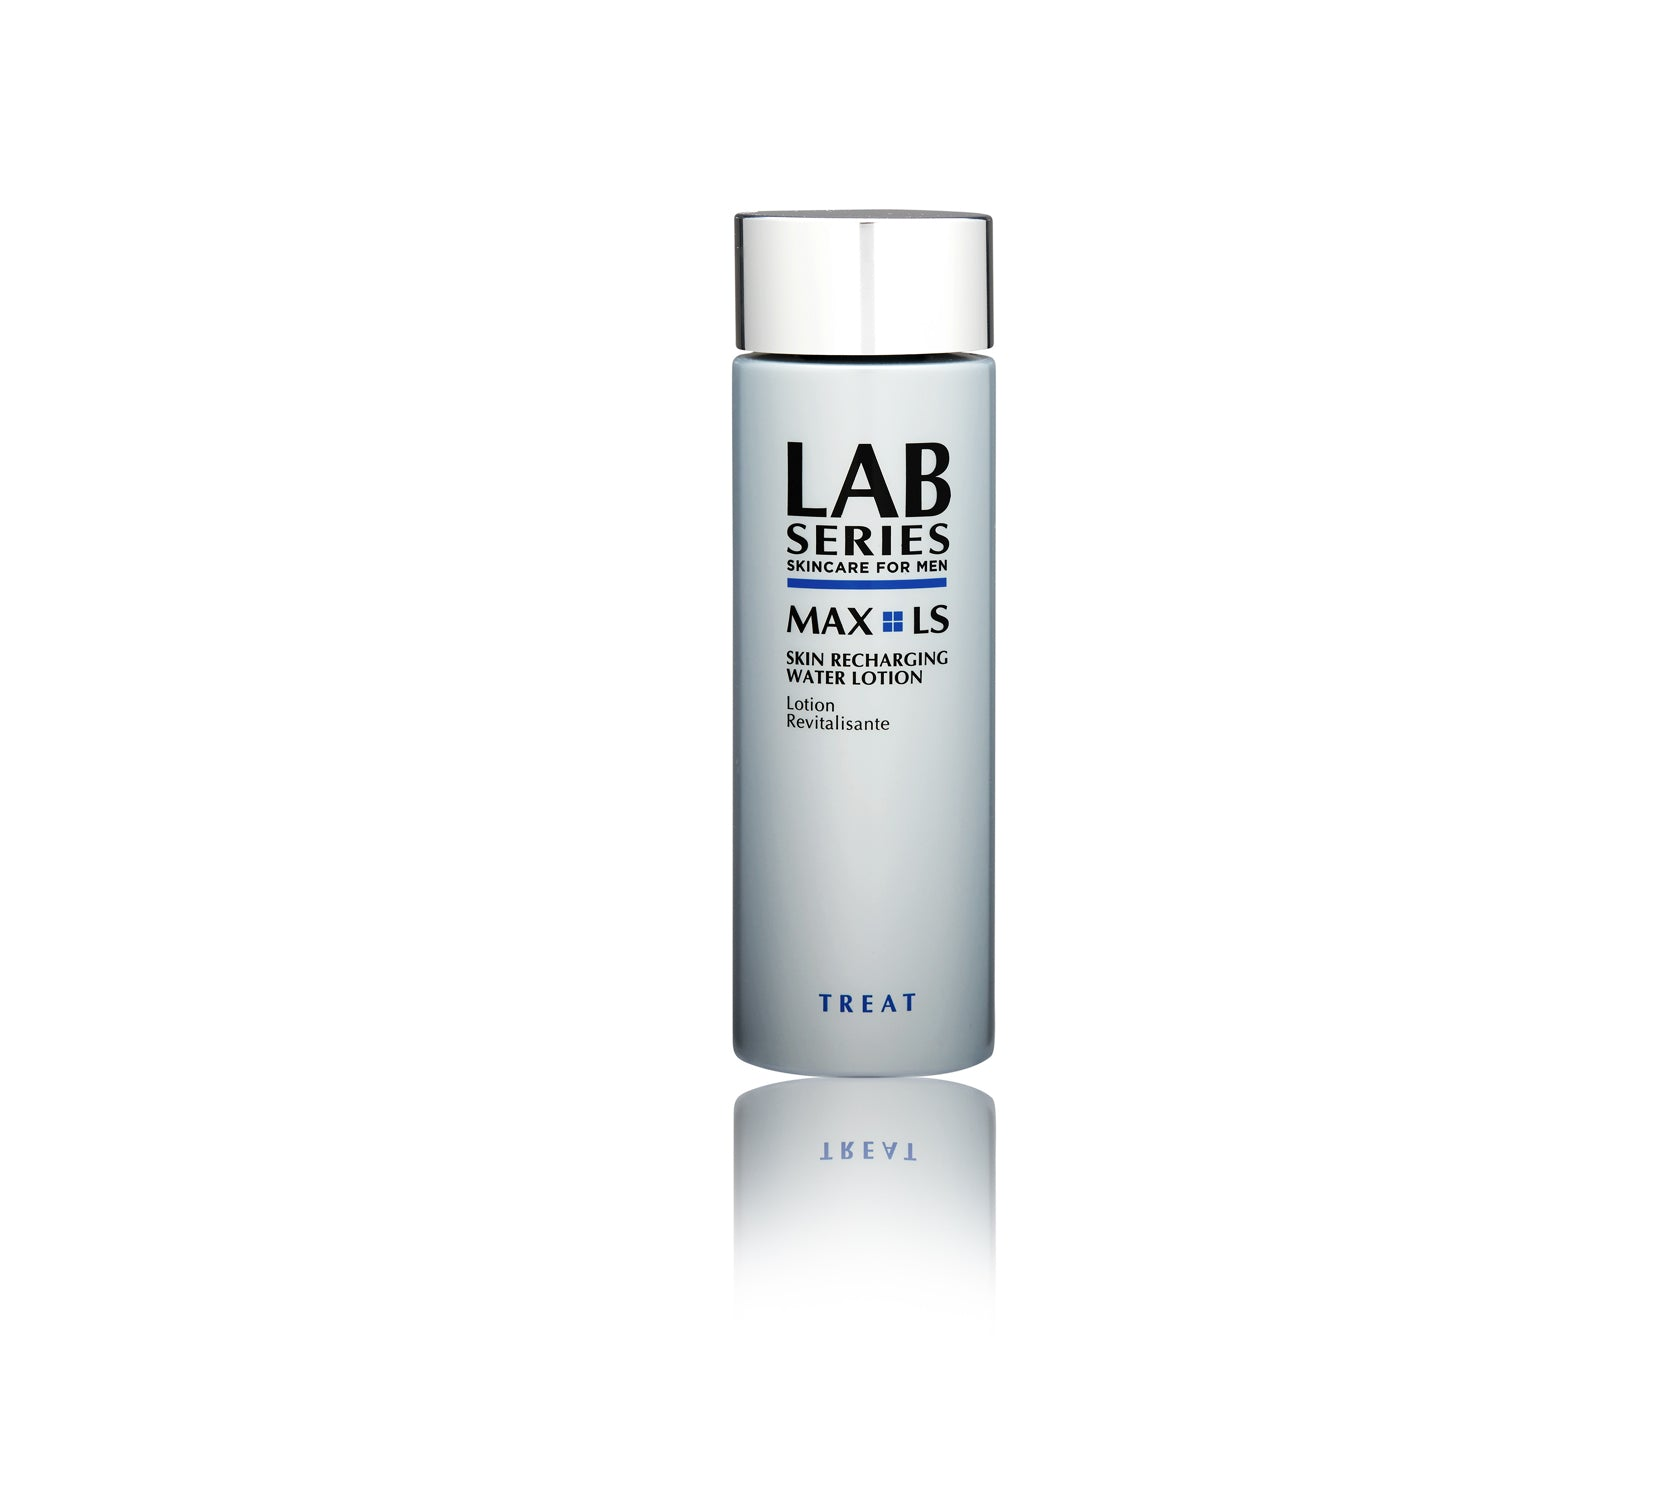 MAX LS Skin Recharging Water Lotion